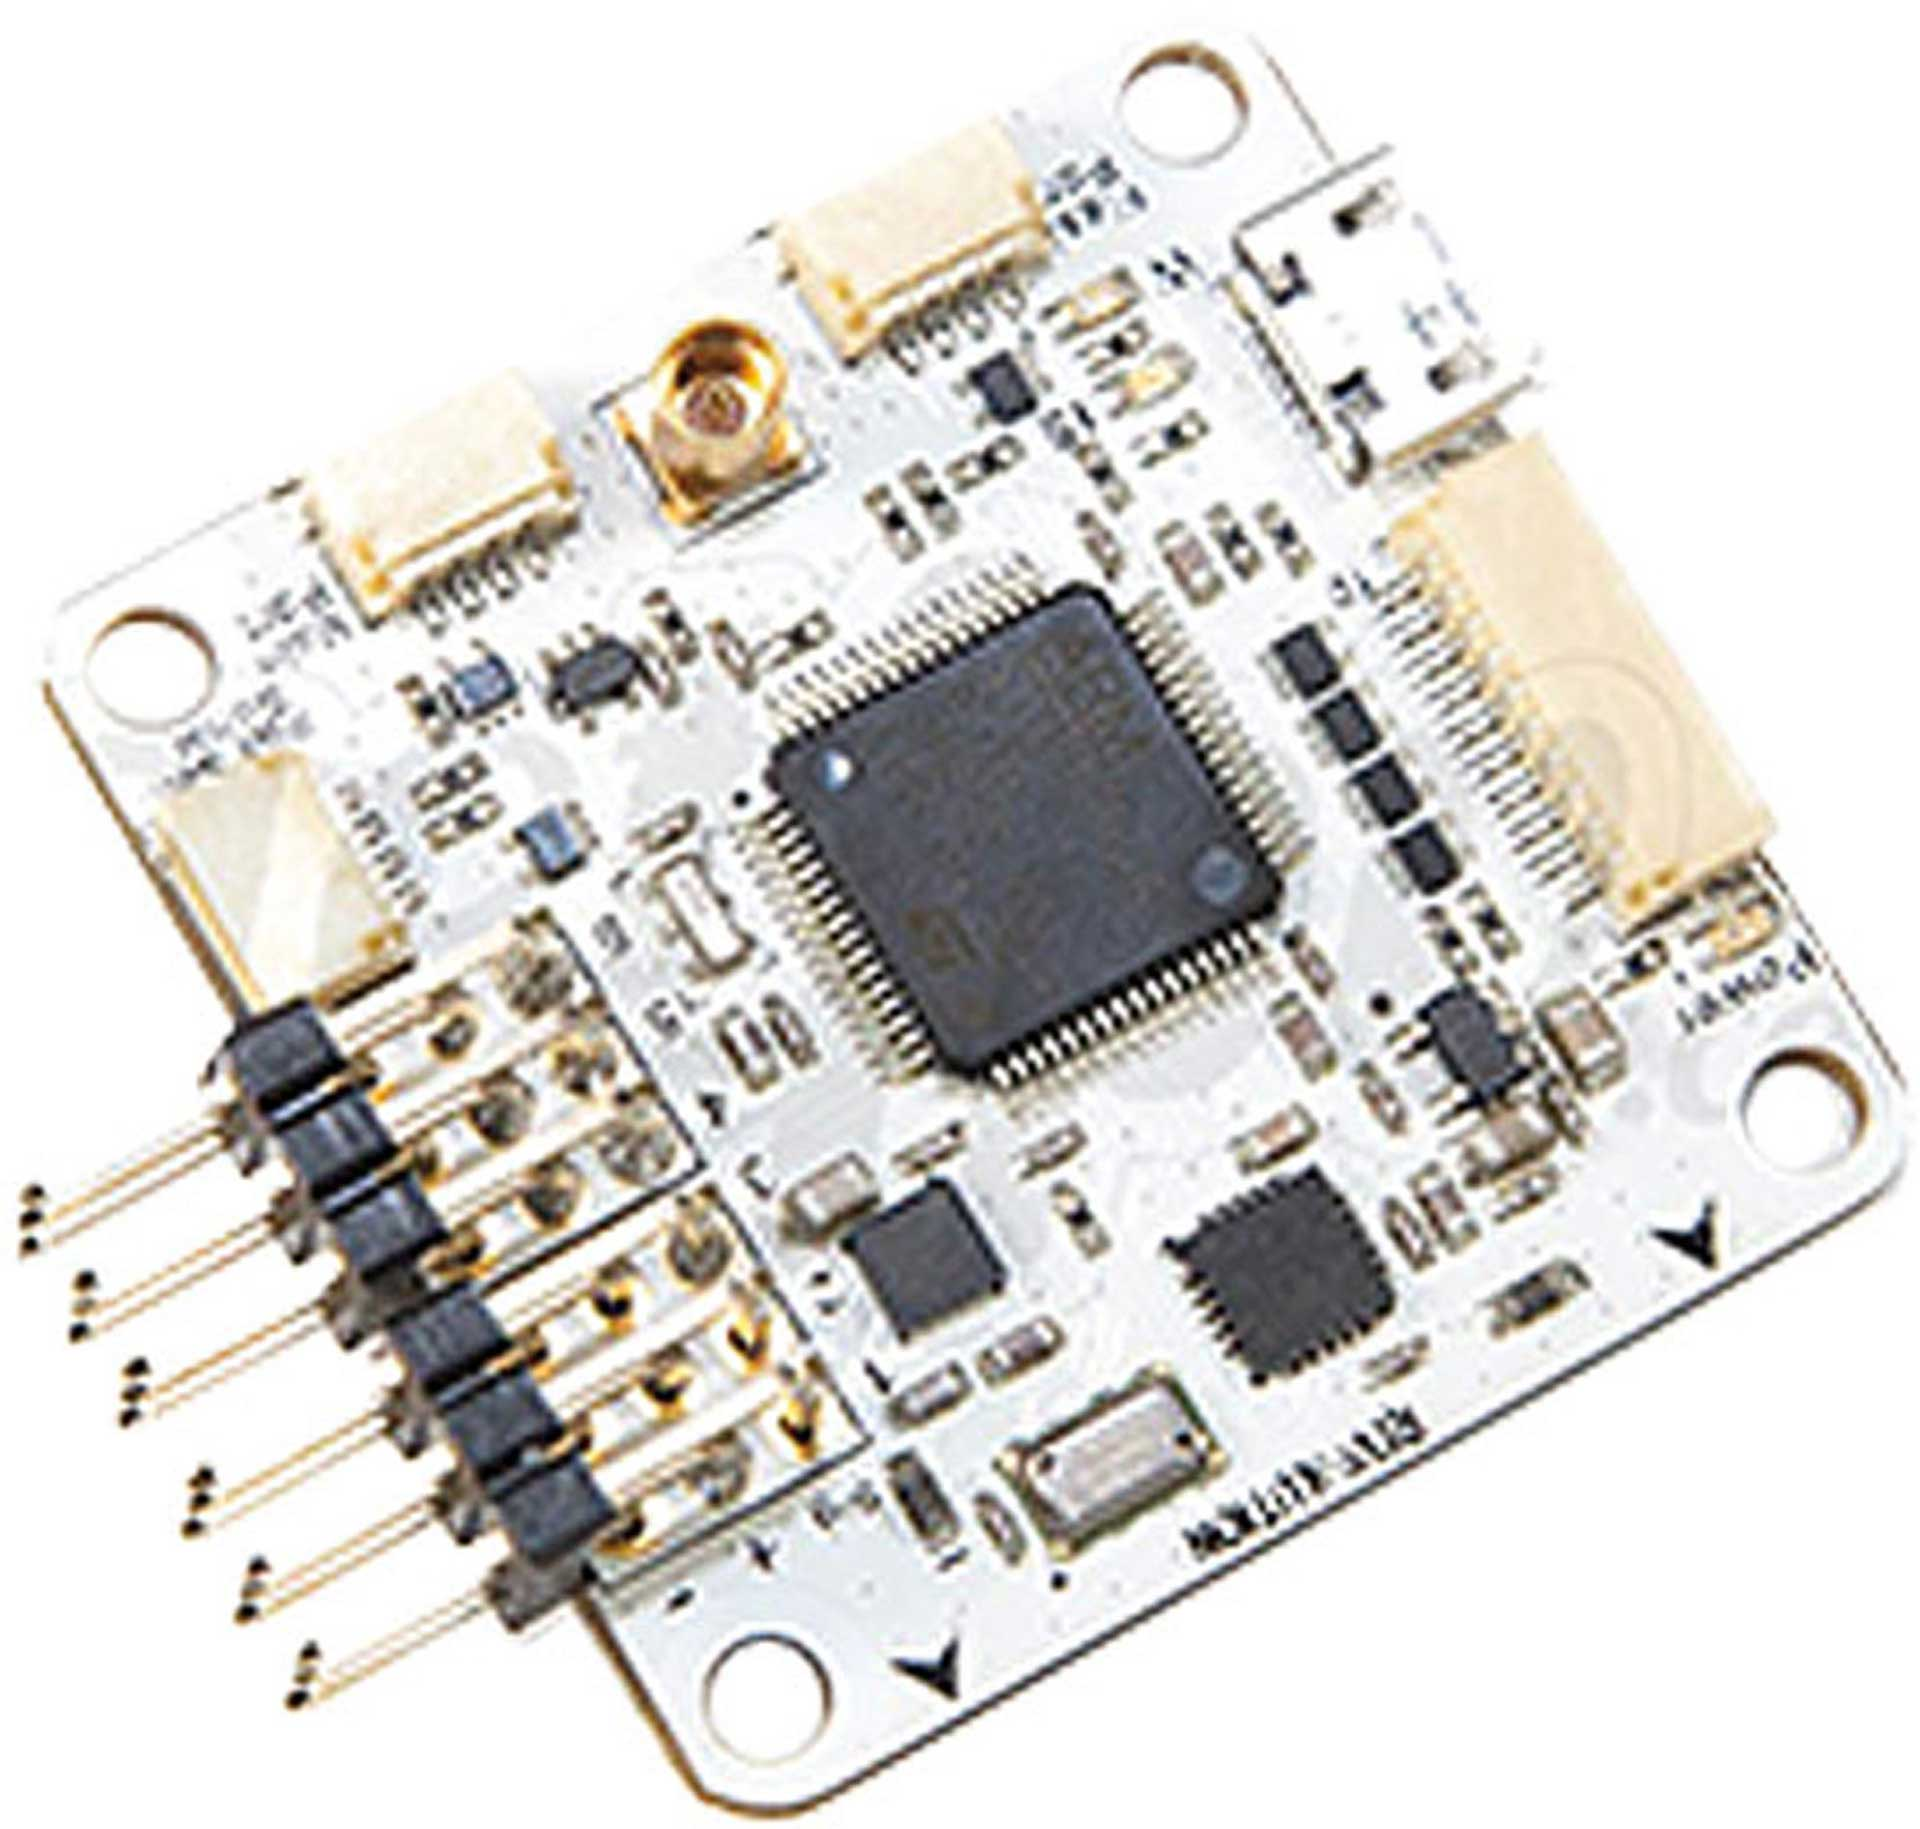 SKY-HERO OP REVOLUTION FLIGHT CONTROL FLIGHT CONTROLLER INTEGRATION OPLINK REVO